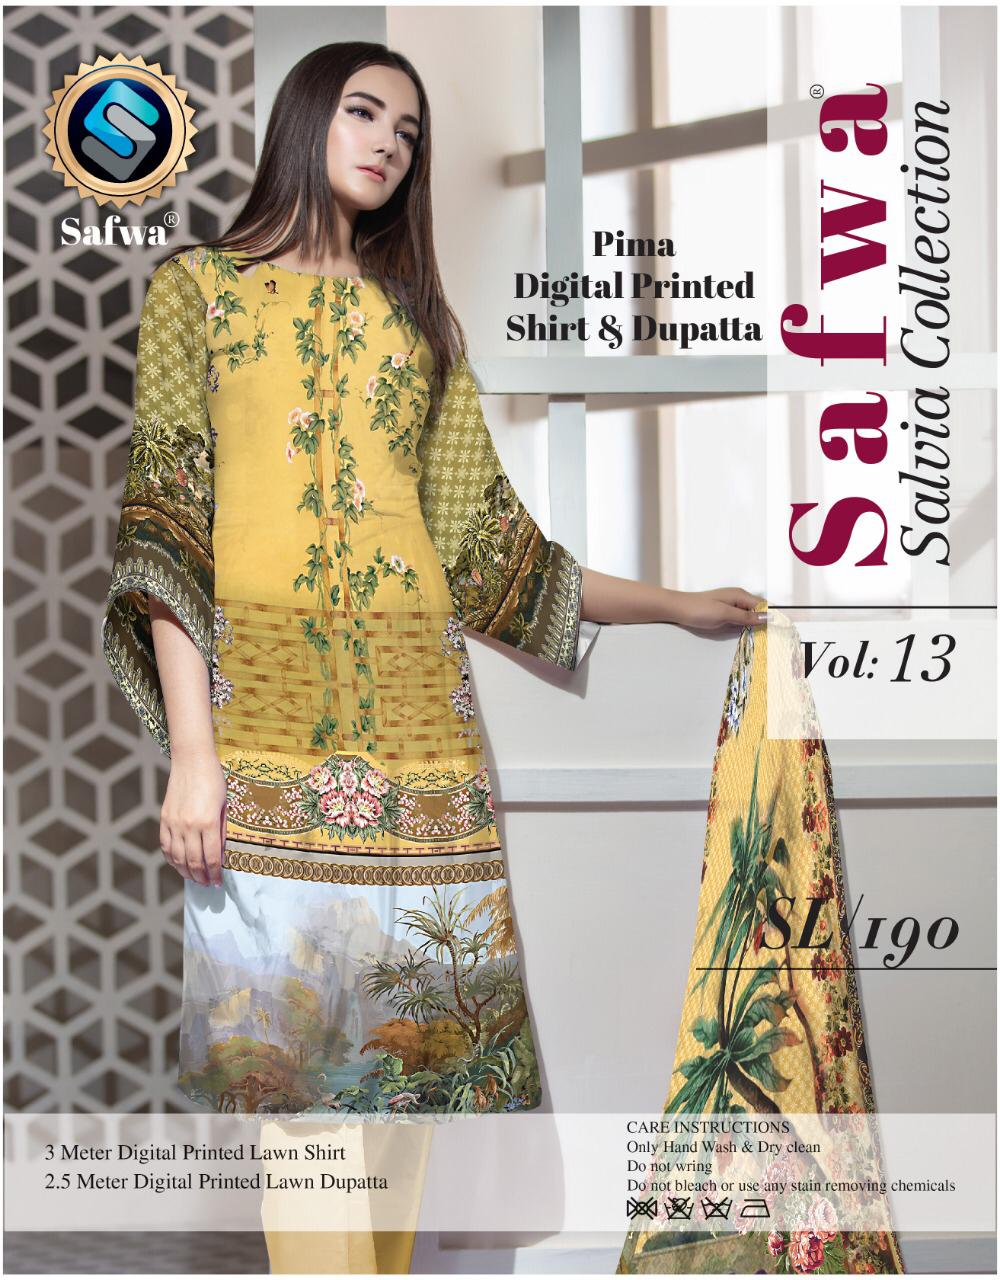 sl-190-SAFWA LAWN-SALVIA COLLECTION- PRINTED -2 PIECE DRESS - Two Piece Suit - safwa